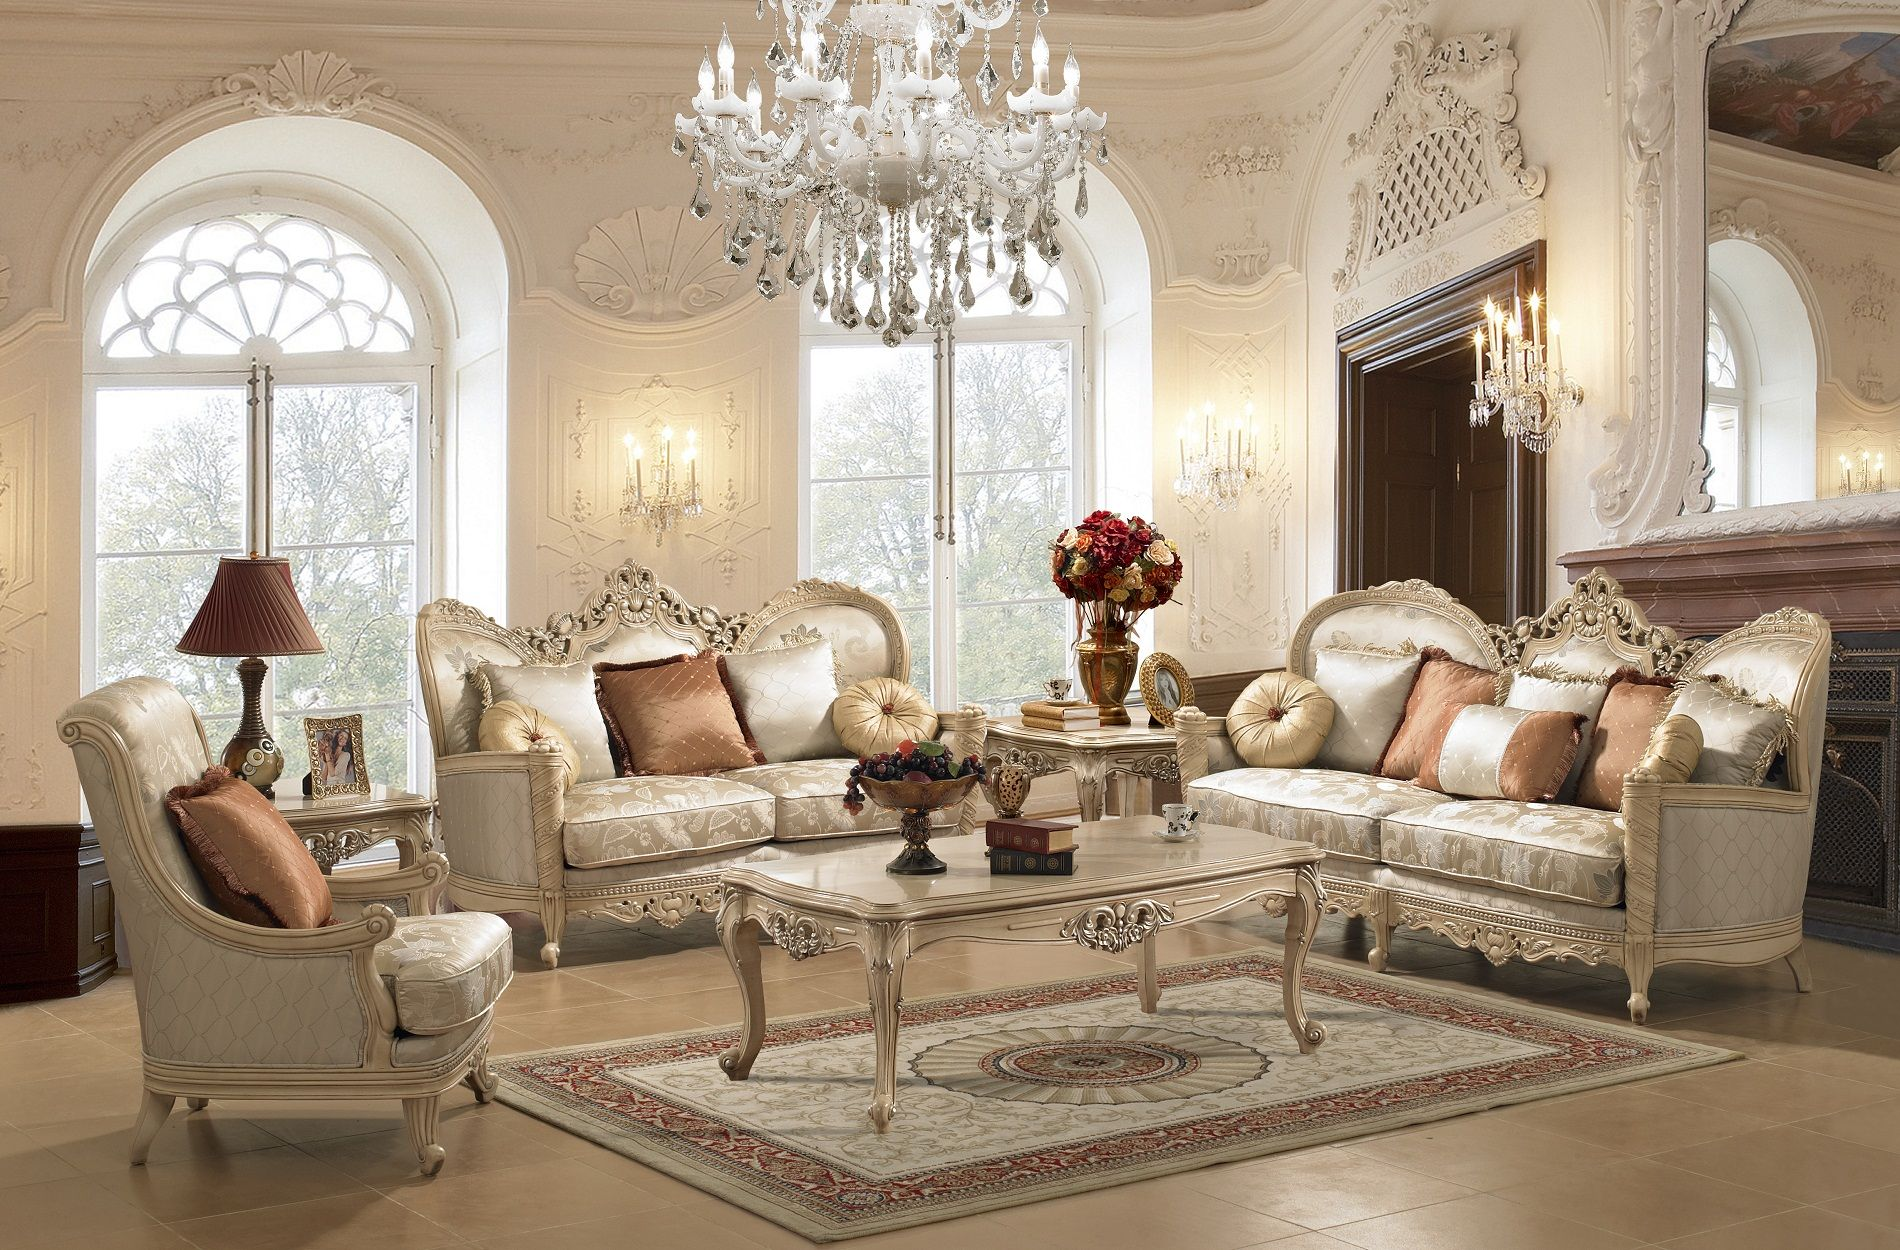 13+ Elegant living room chairs ideas